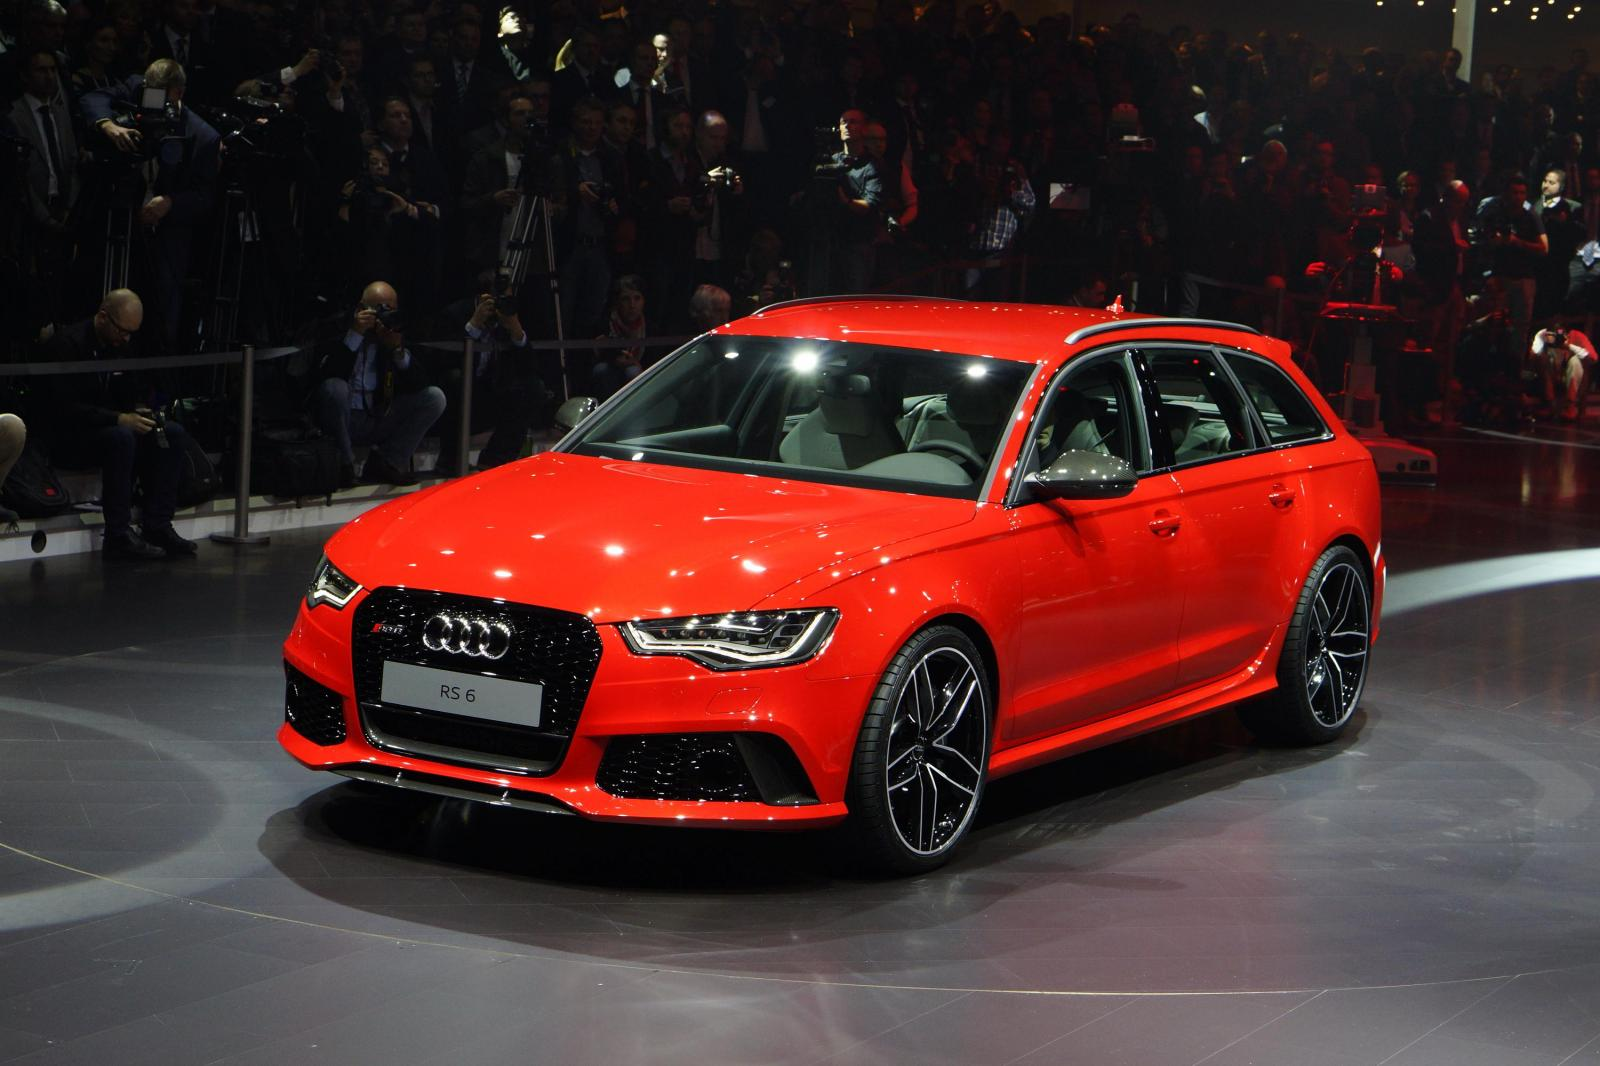 2014 audi rs6 avant at geneva � gallery rs246com